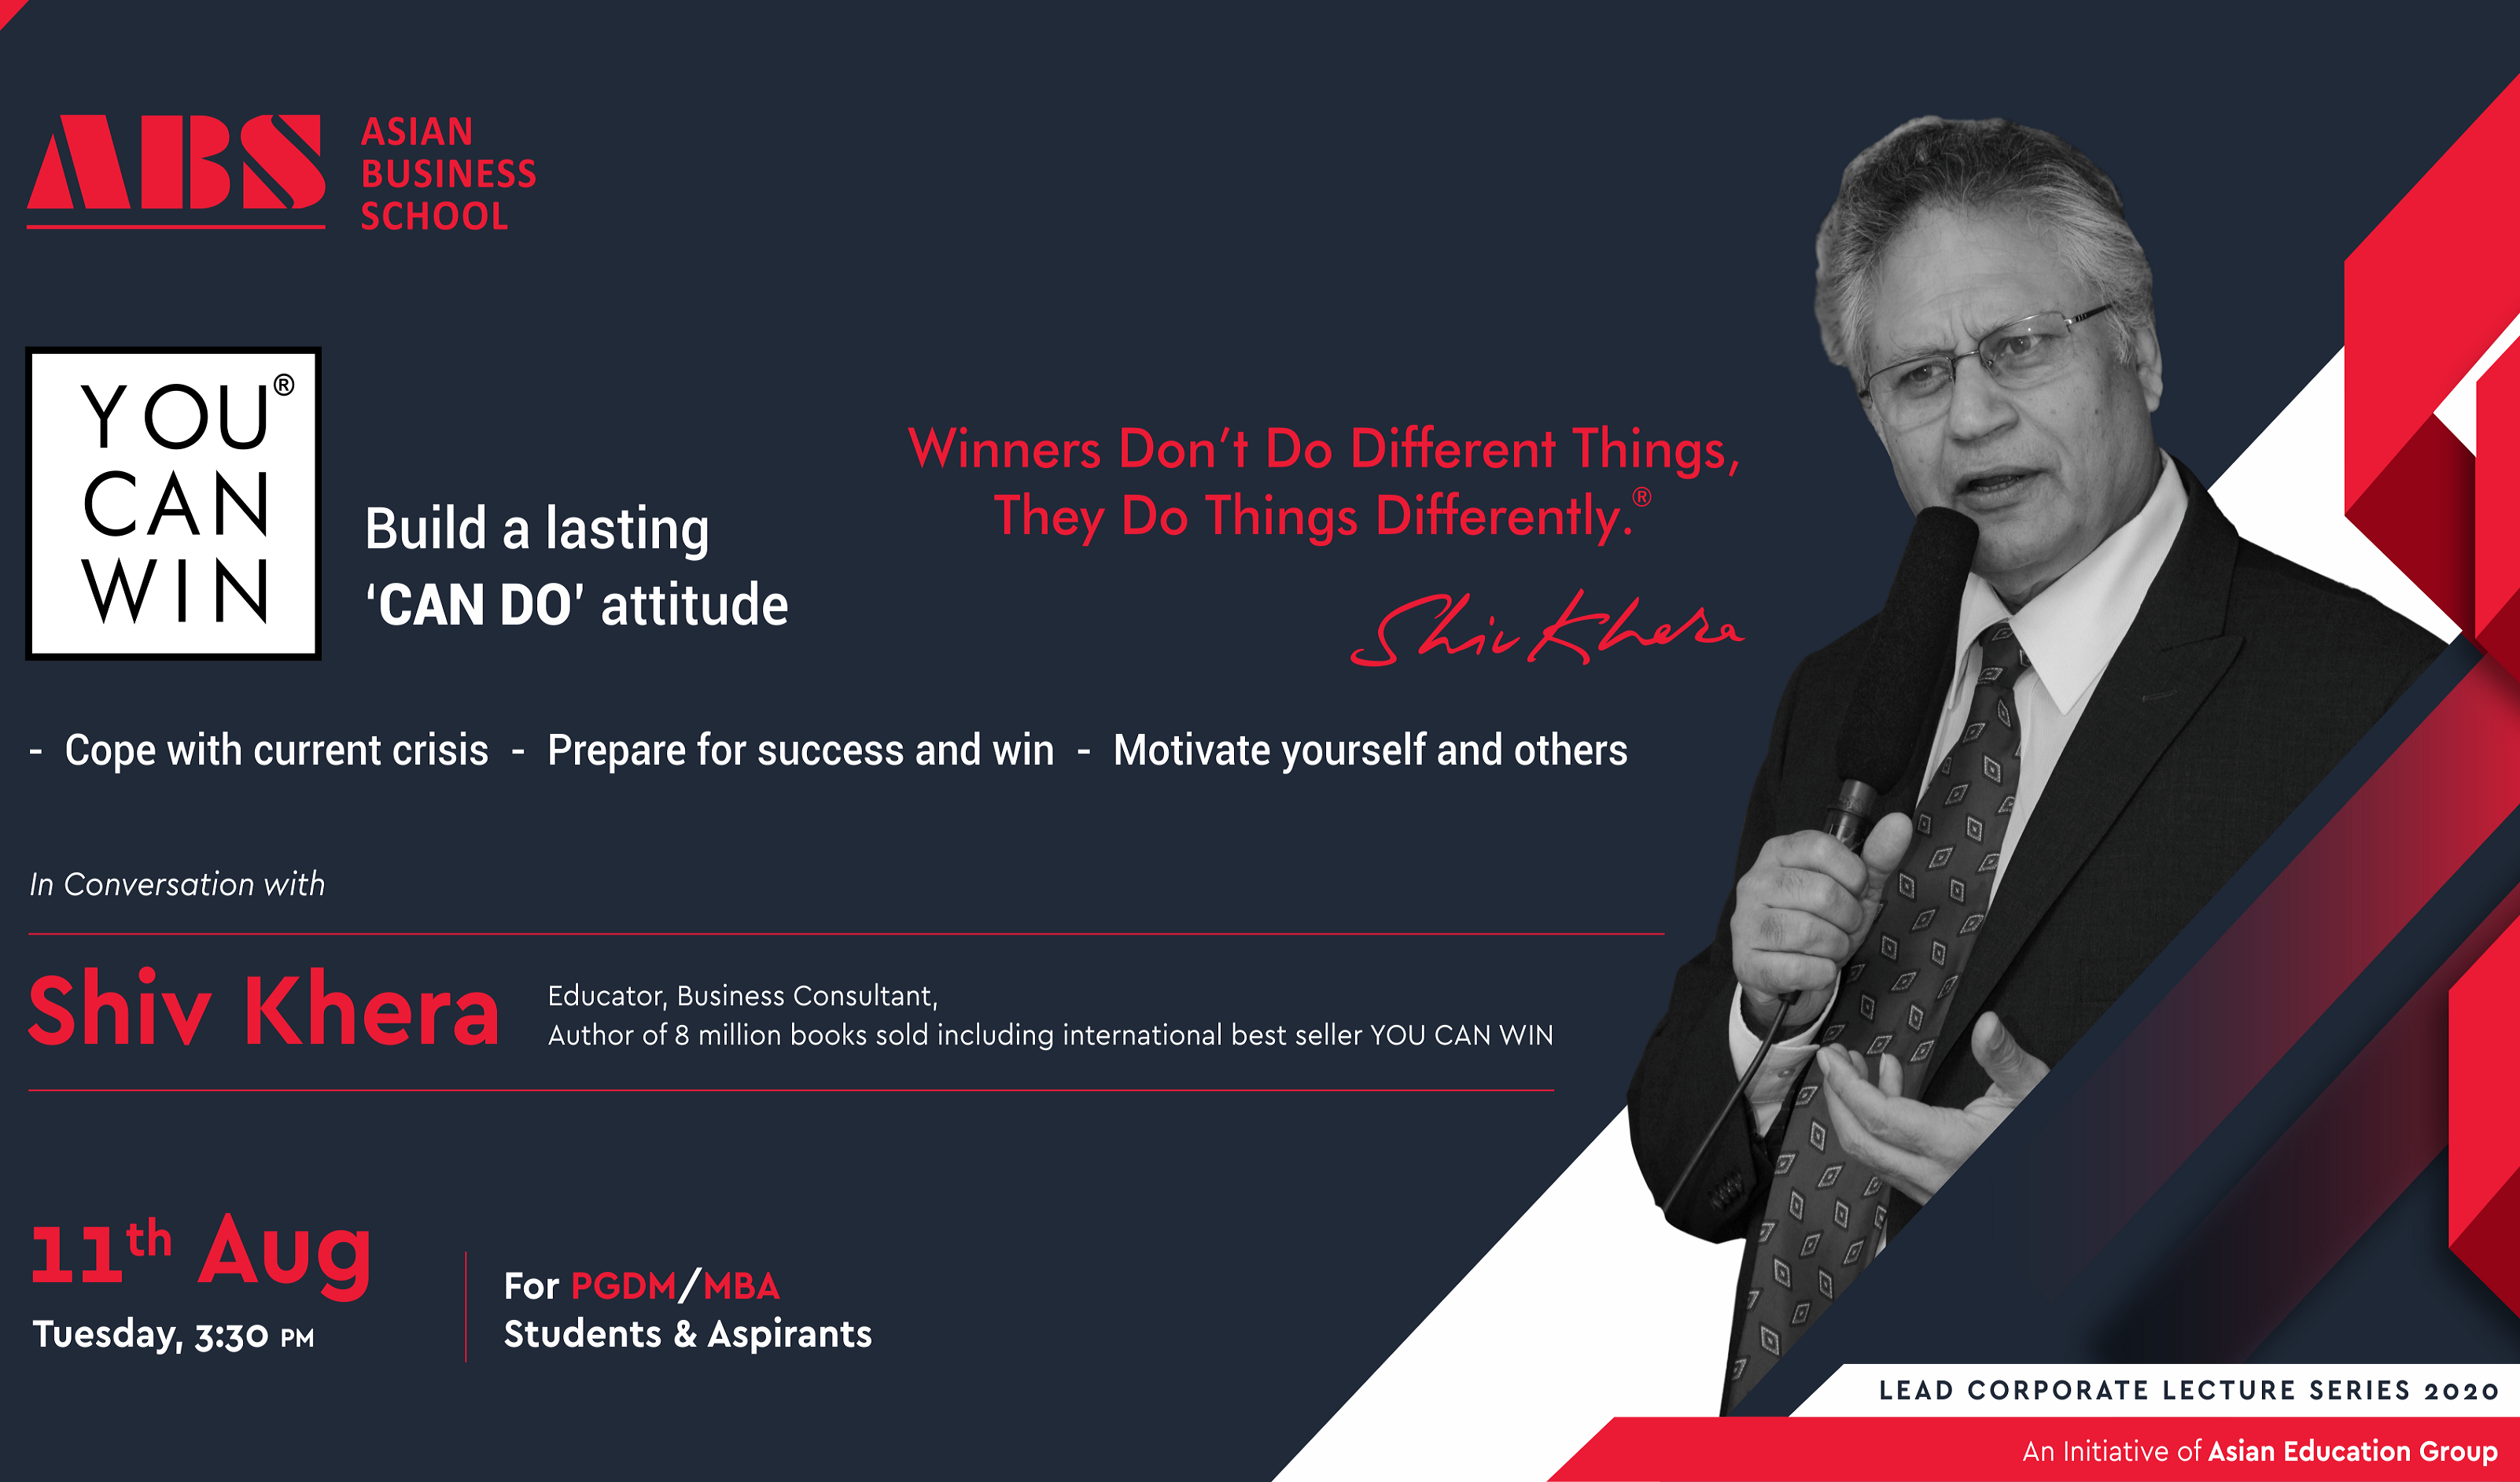 """ABS to Host Shiv Khera of International Best Seller """"You Can Win"""" Fame for an Interactive Webinar on """"Building a Lasting CAN DO Attitude"""""""